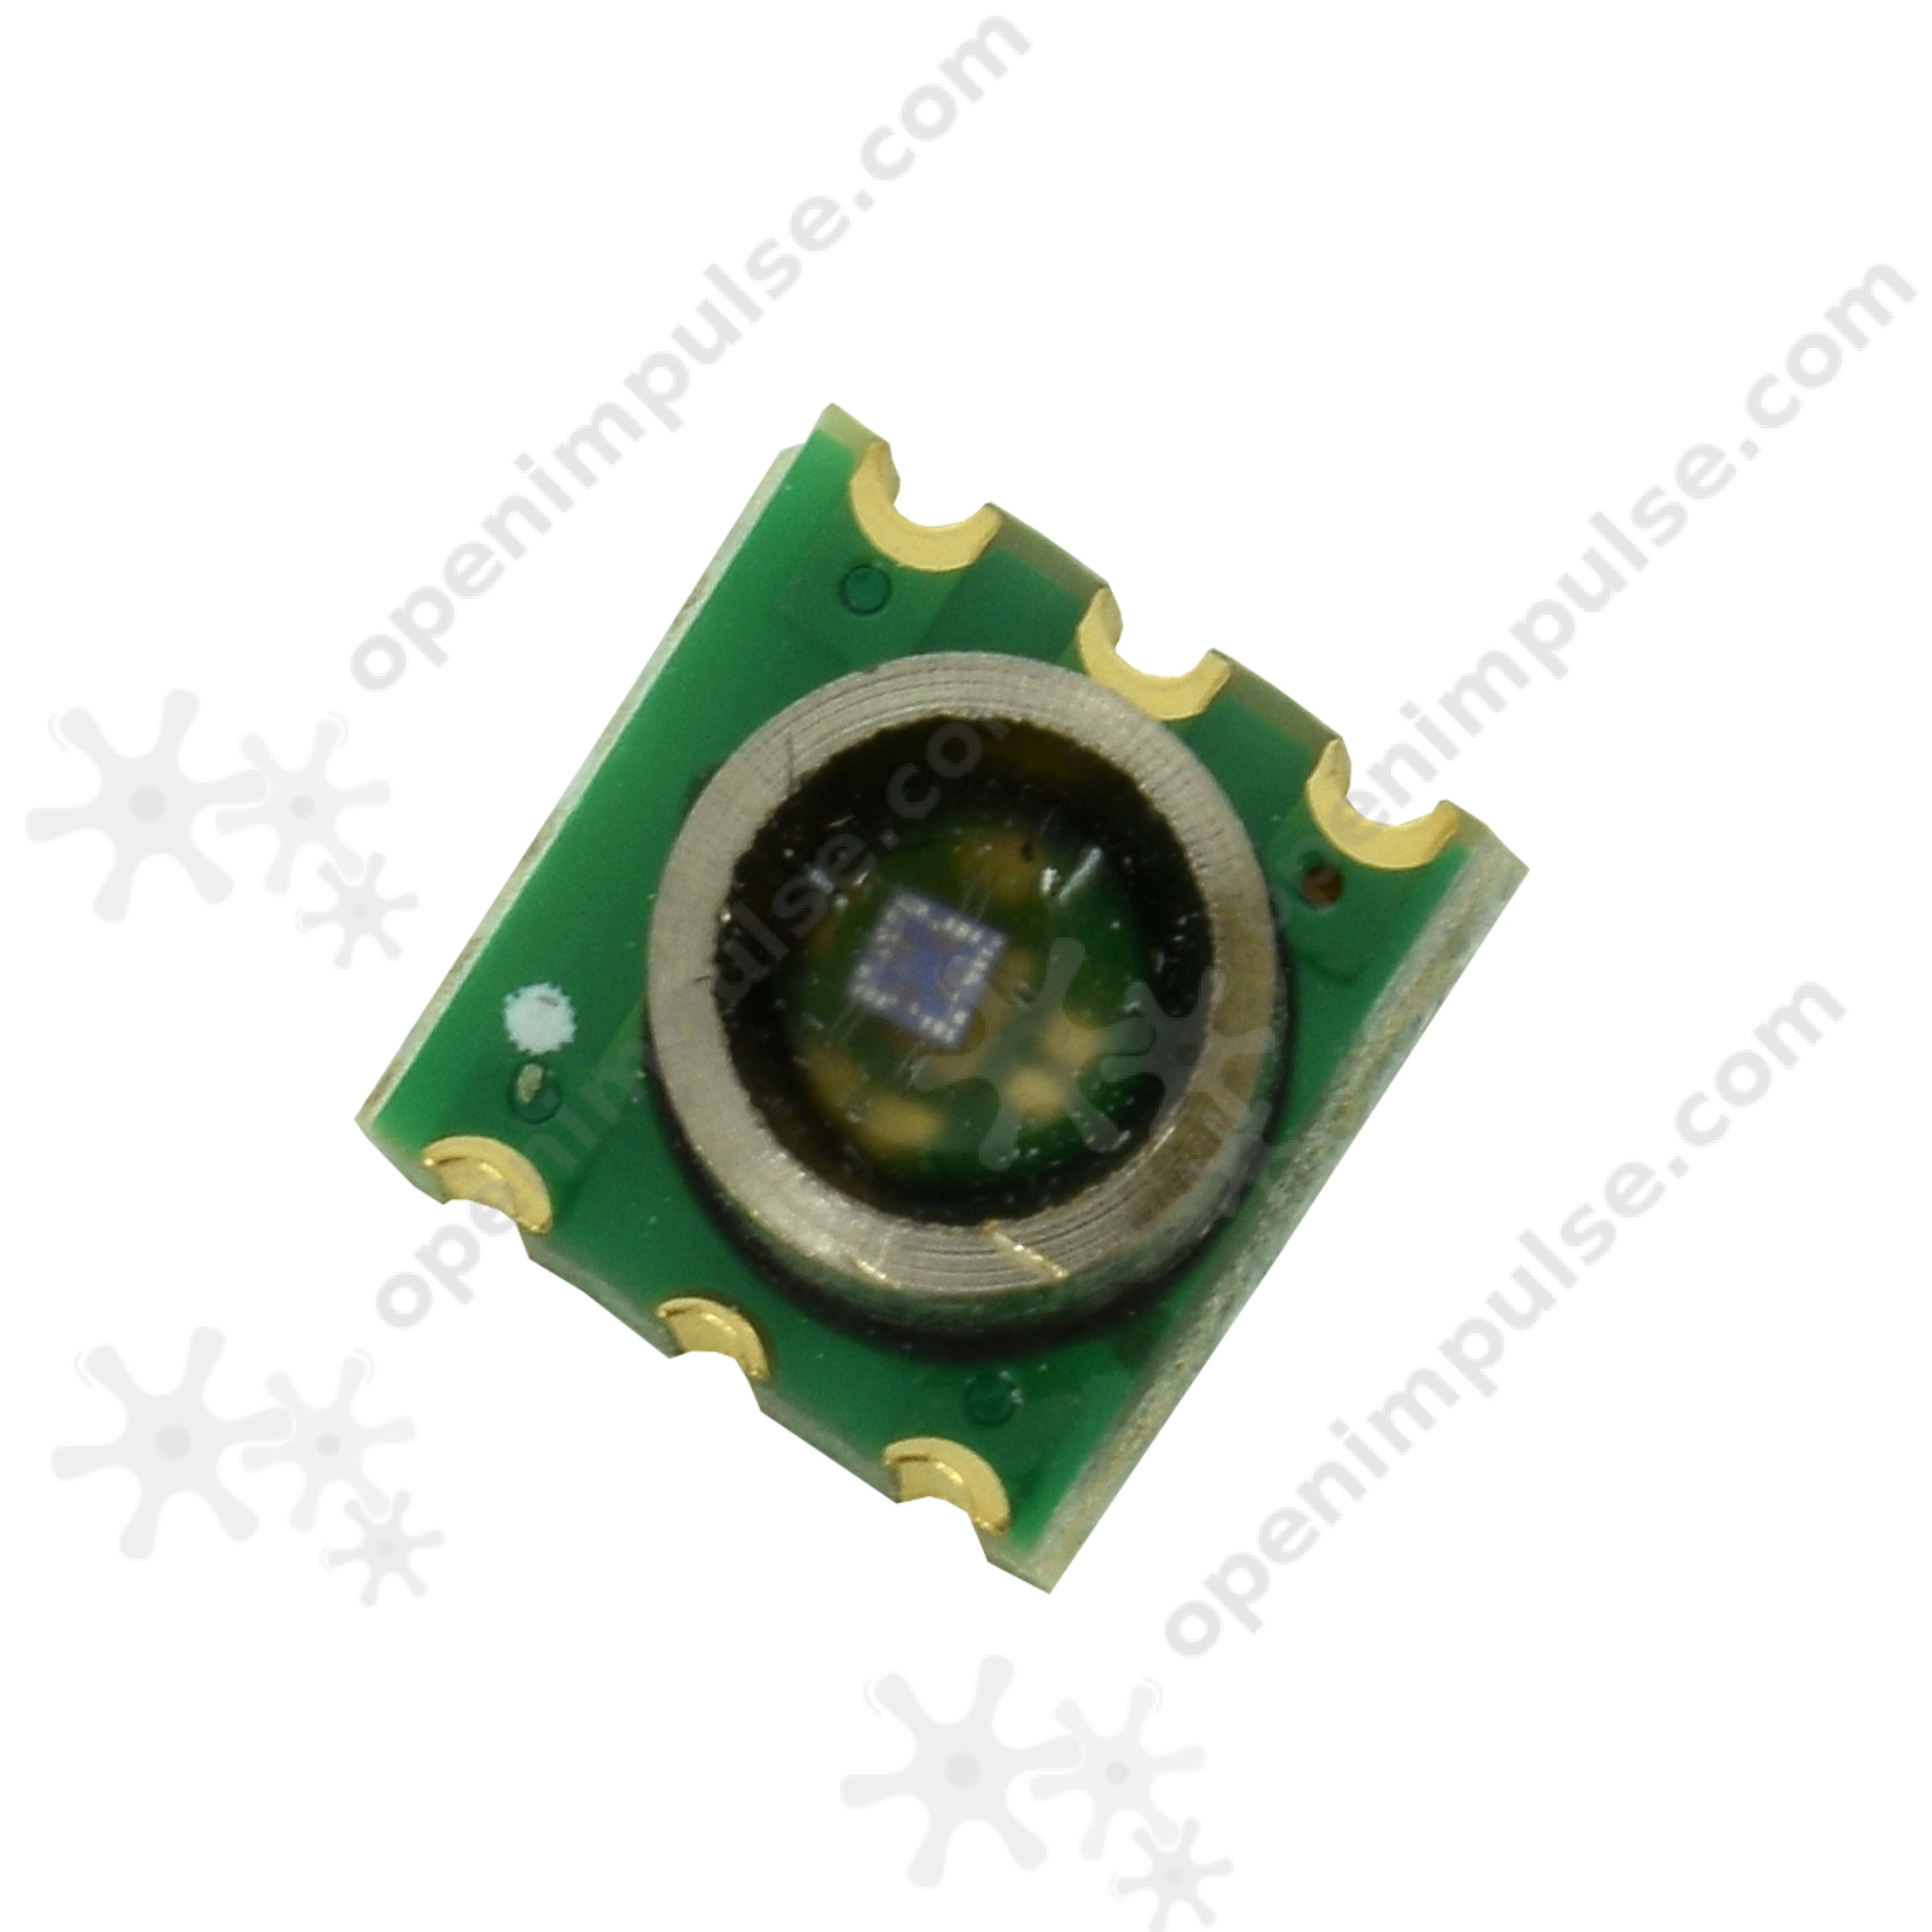 MD-PS002-150KPa Pressure Sensor